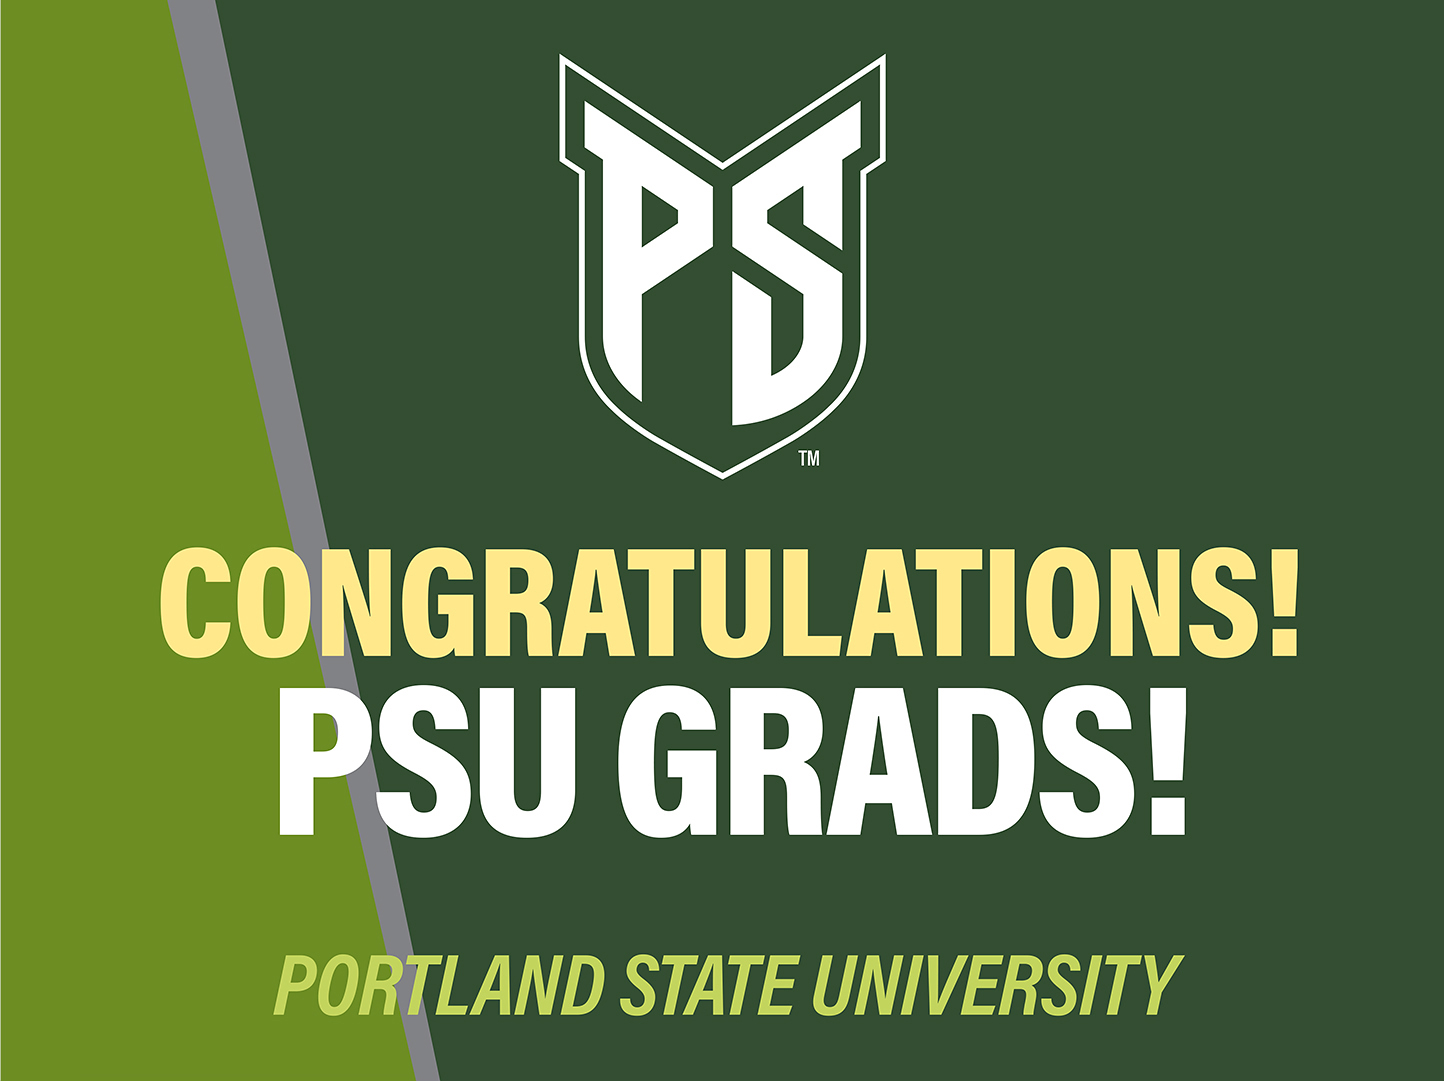 Green yard sign with PSU shield on green background. Congratulations in yellow. PSU GRADS! in white. Portland State University in light green at bottom.